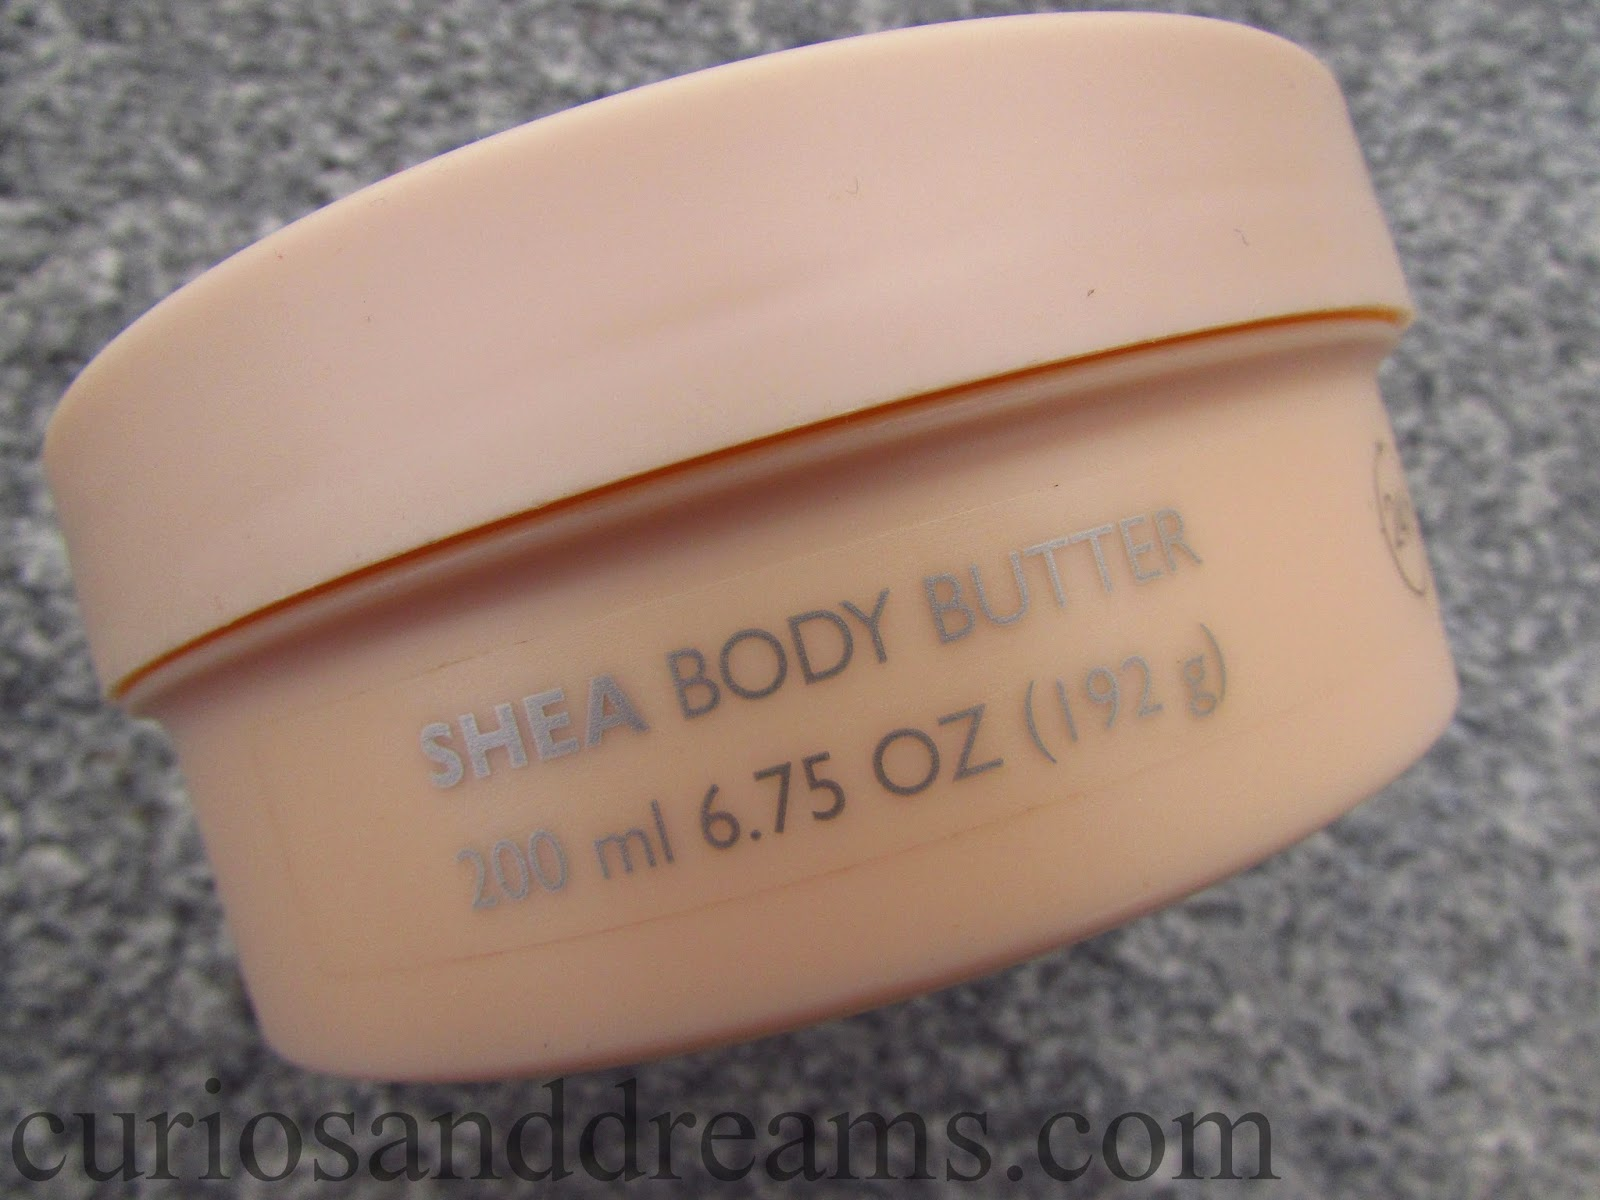 The Body Shop Shea Body Butter review, Shea Body Butter review, TBS Shea Body Butter review